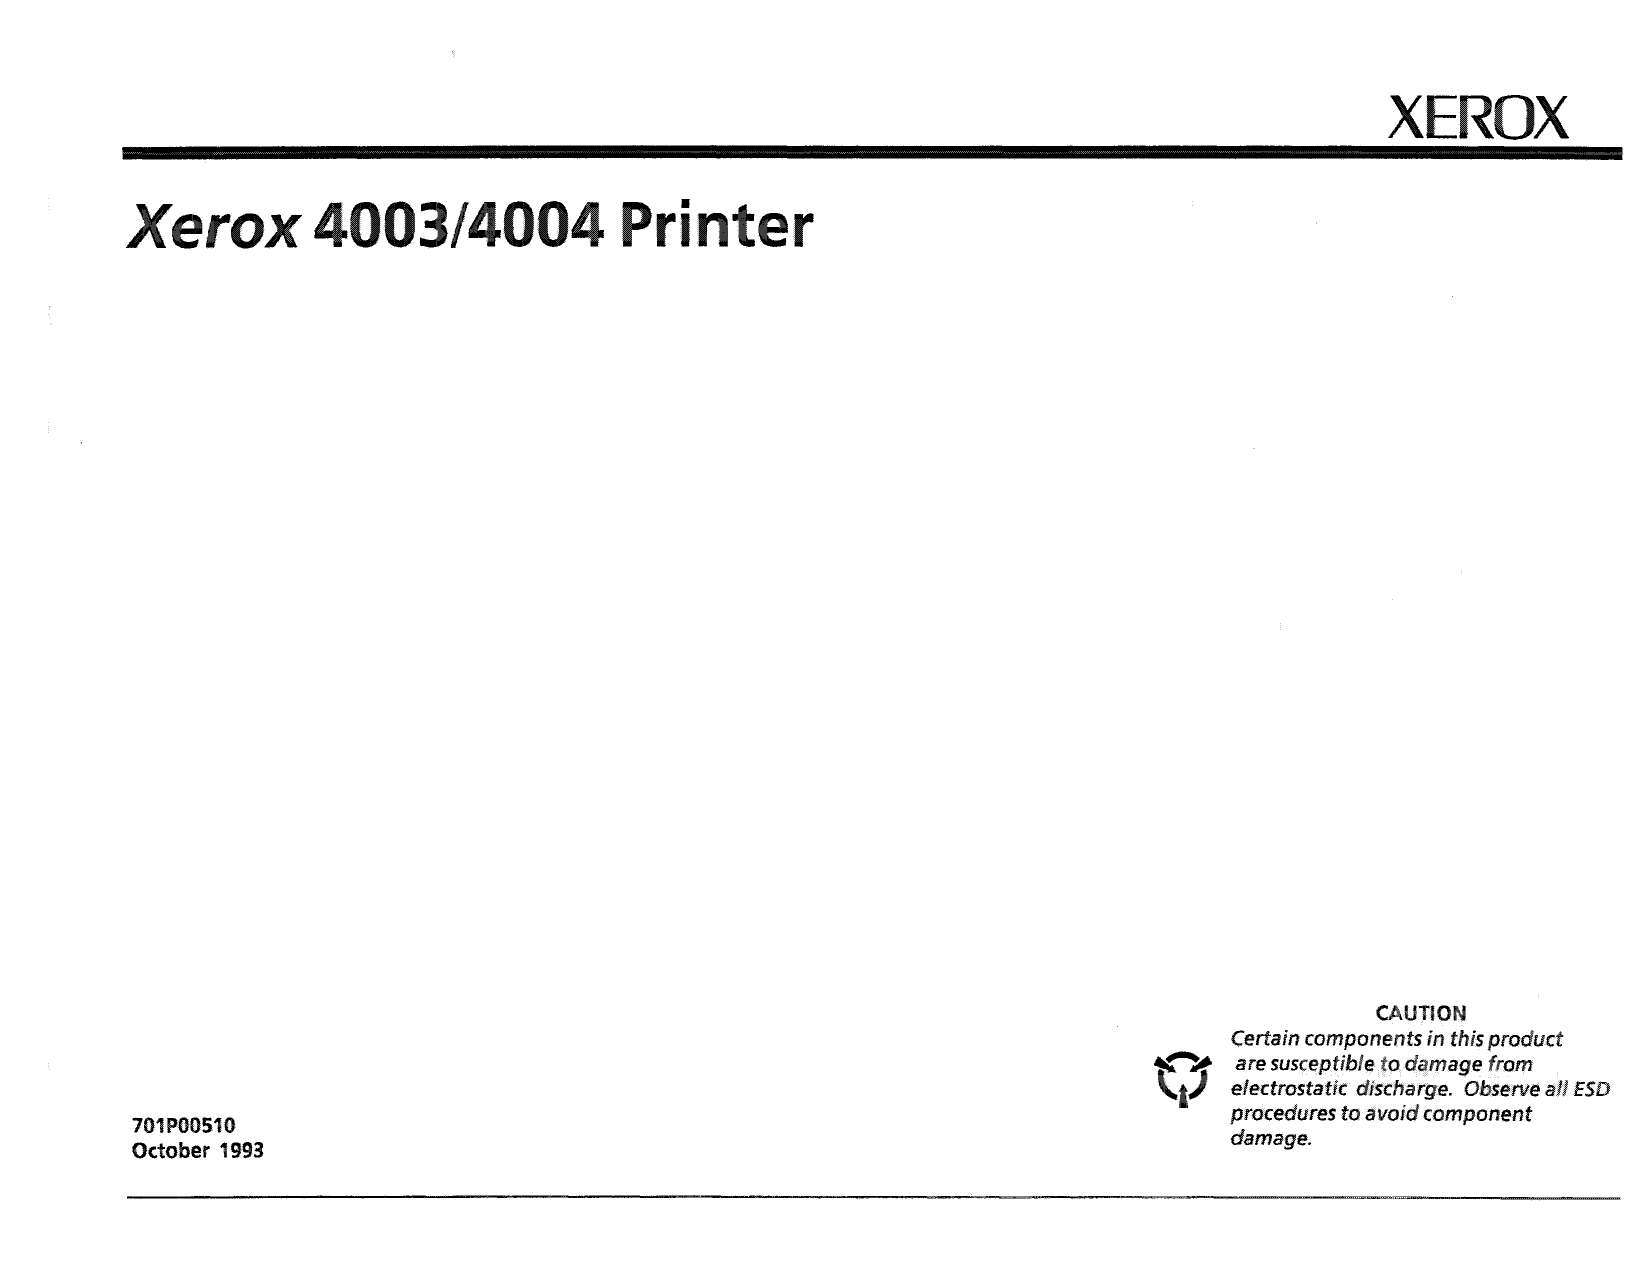 Xerox Printer 4003 4004 Dot-Matrix Printer Parts List and Service Manual-1